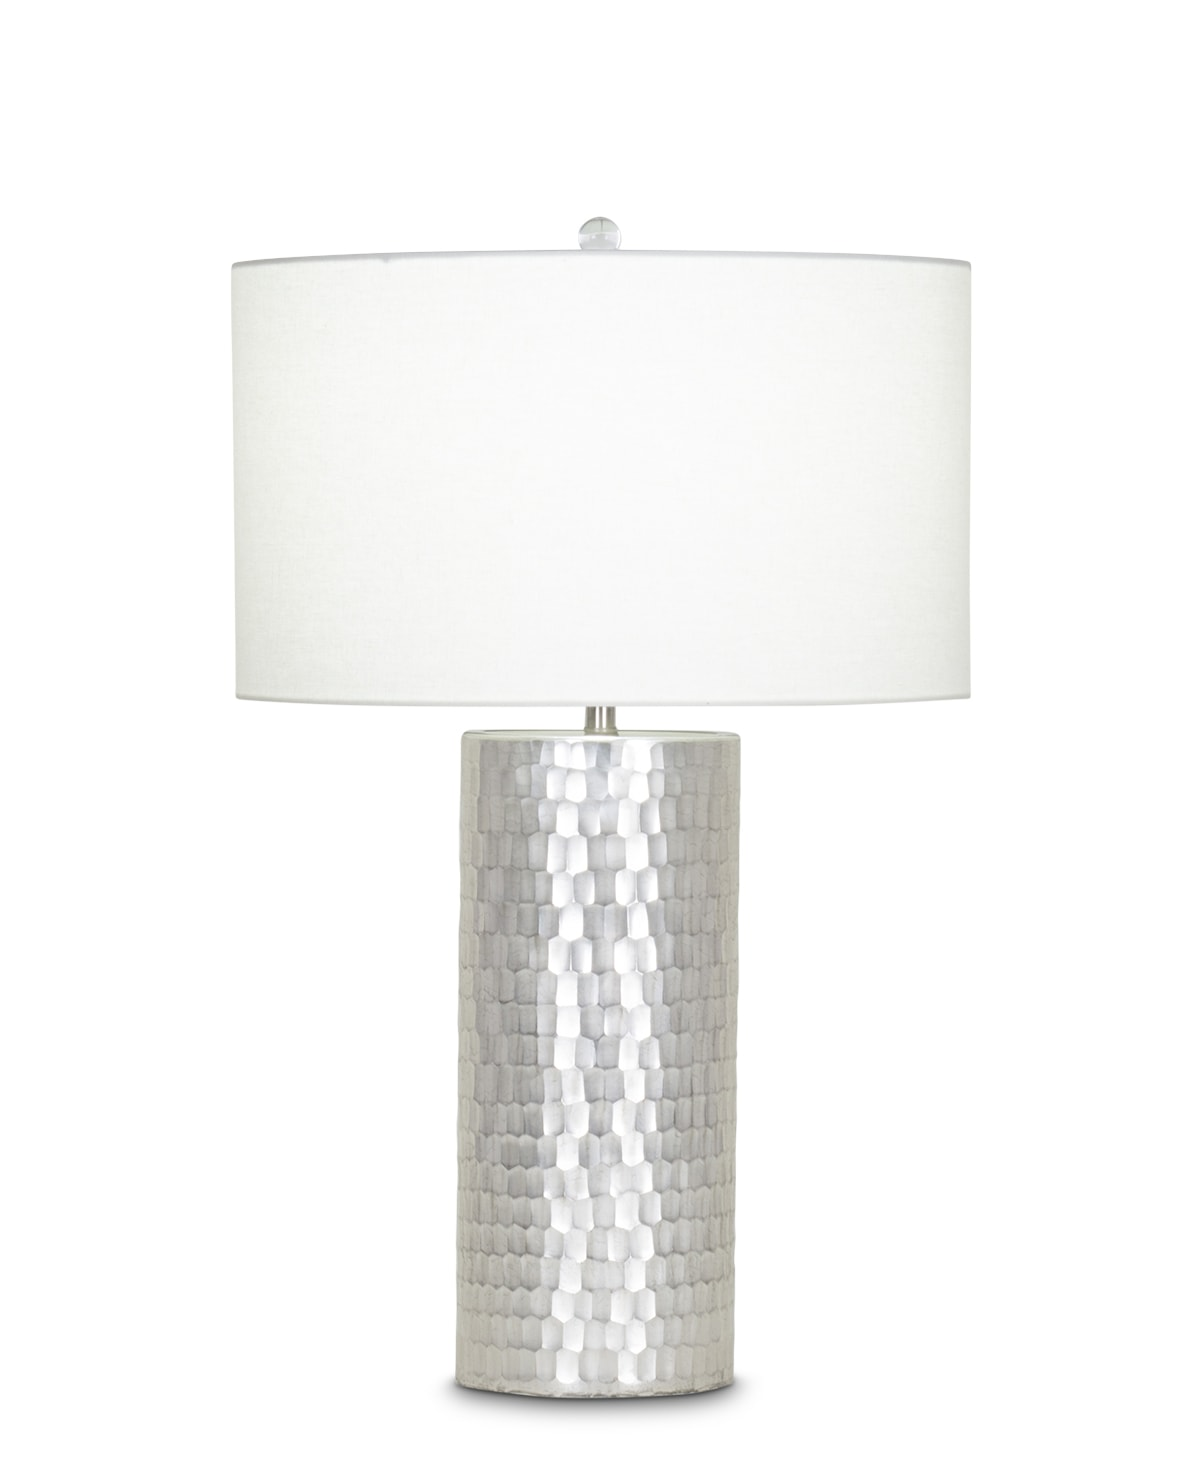 FlowDecor Avery Table Lamp in mouth-blown glass with champagne hand-etched finish and off-white linen drum shade (# 3956)